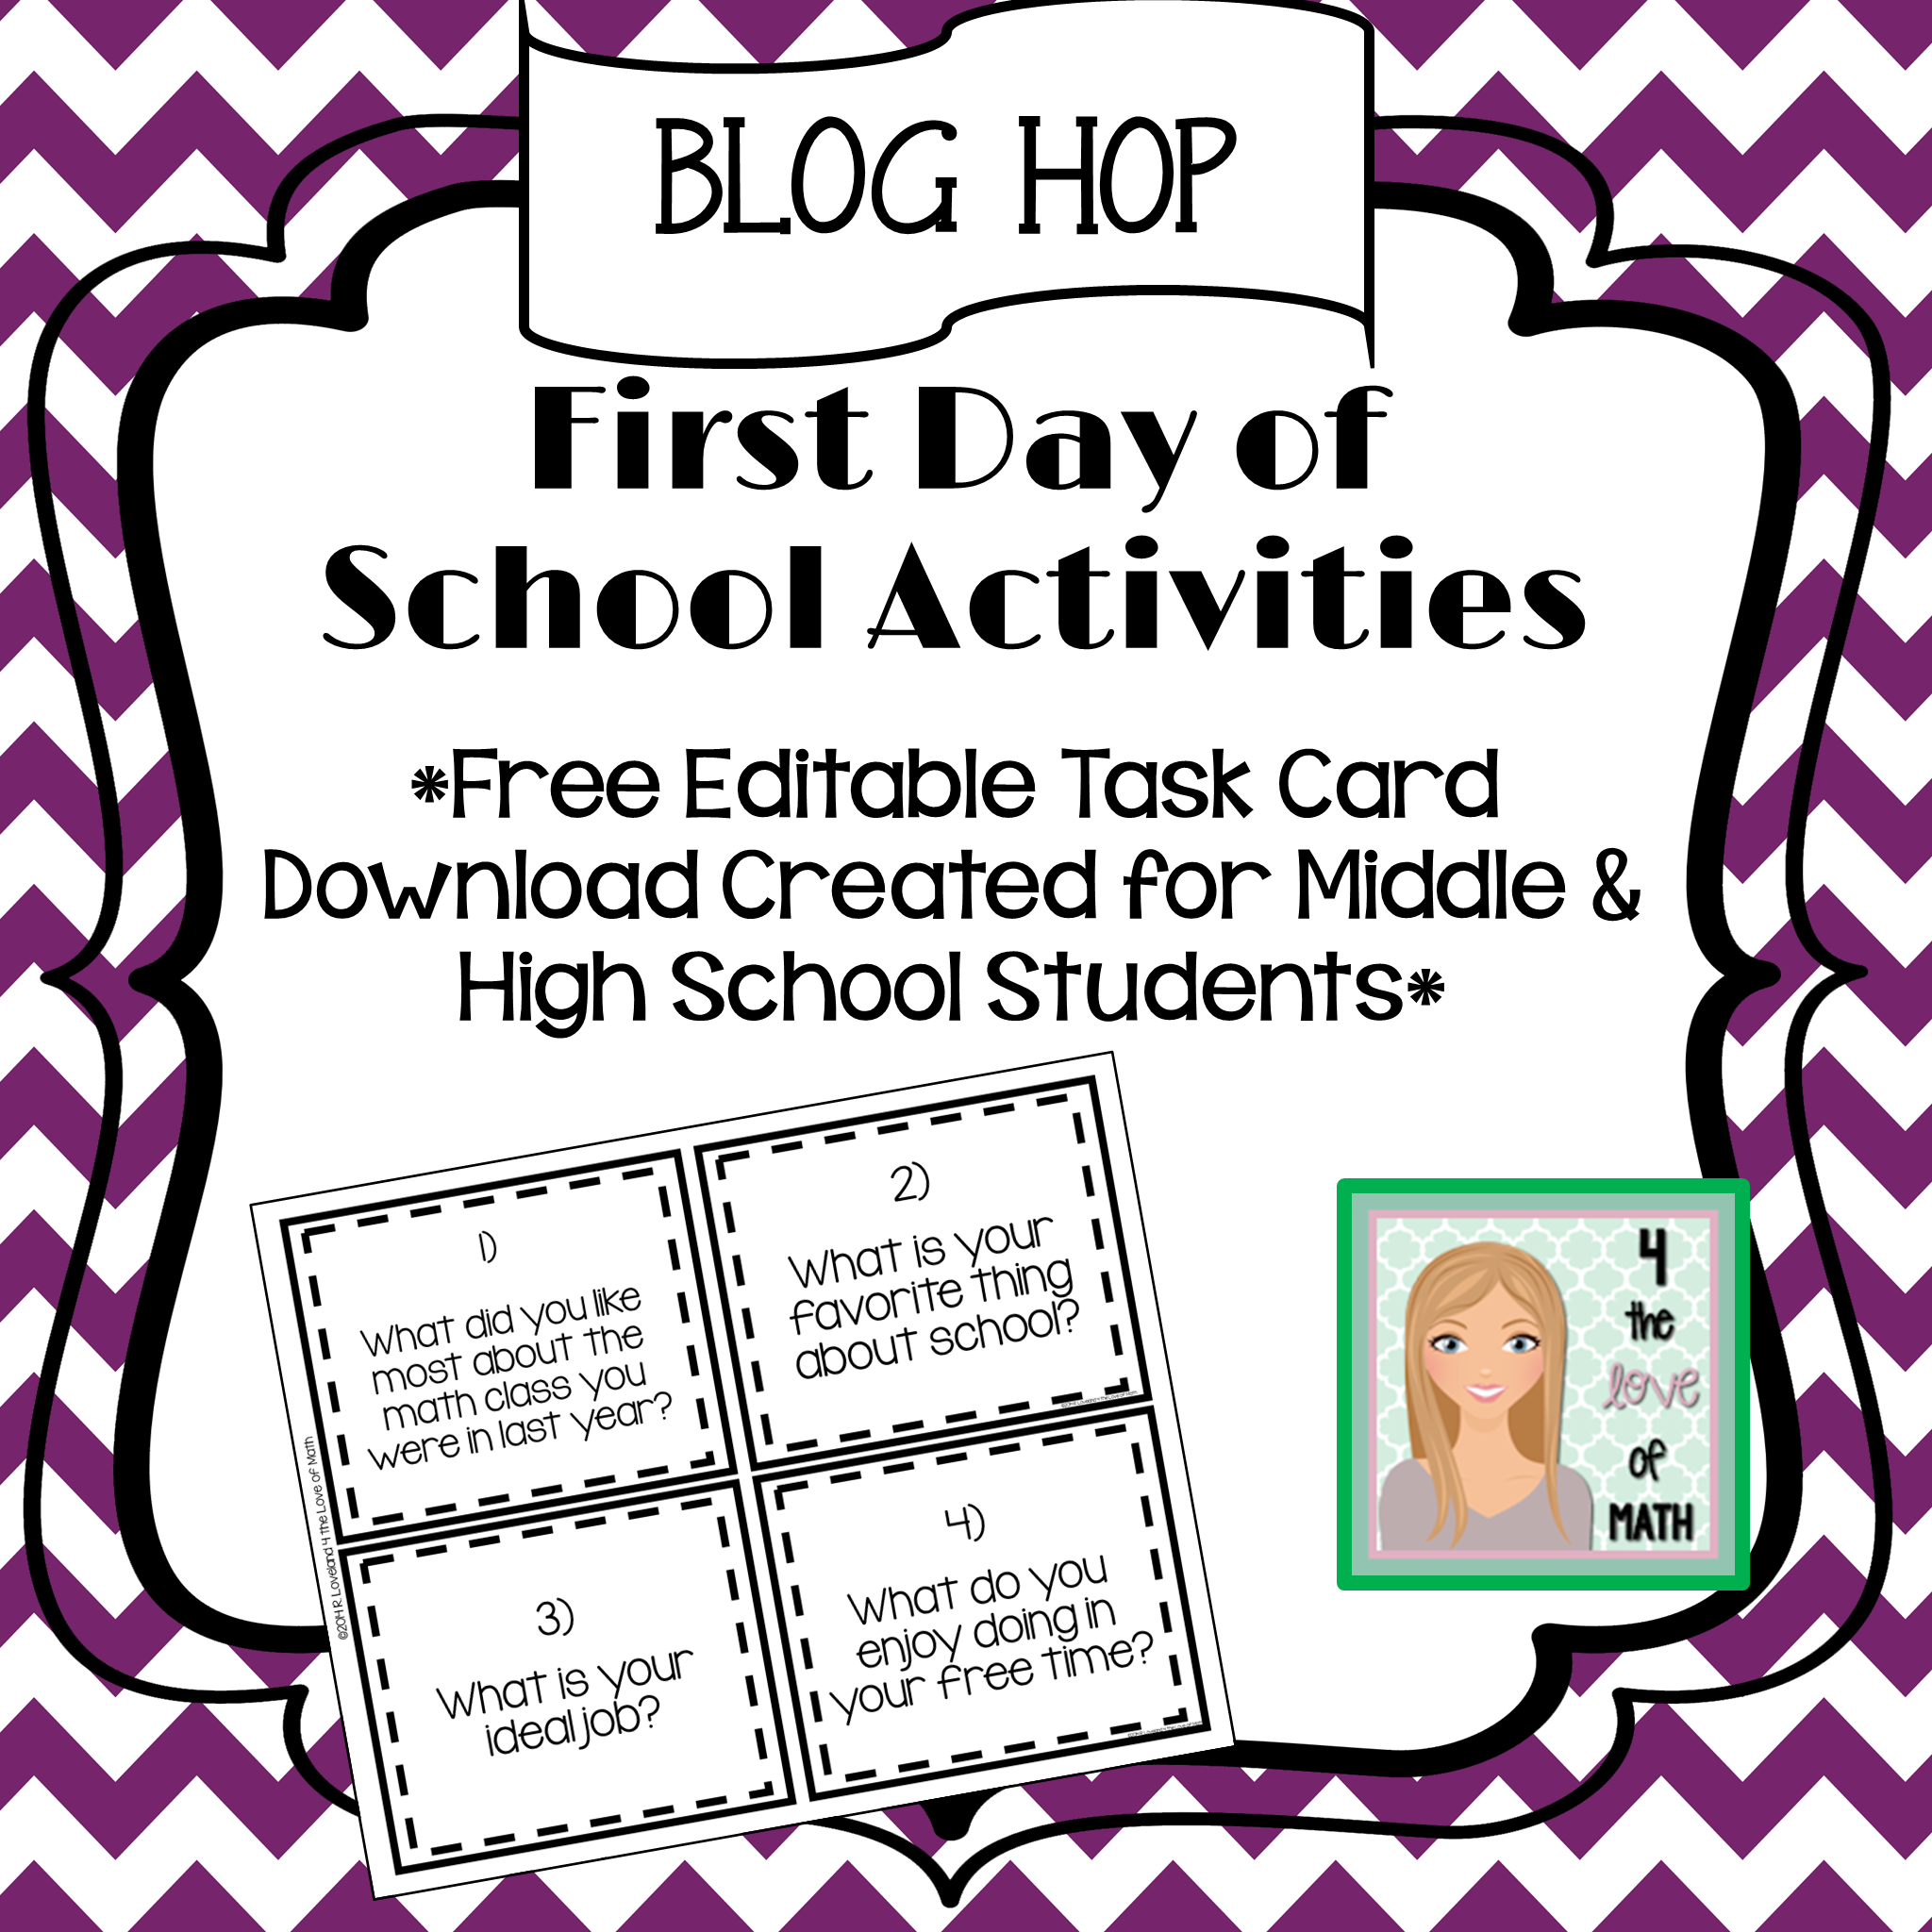 First Day Of School Activities: Blog Hop! Check Out This